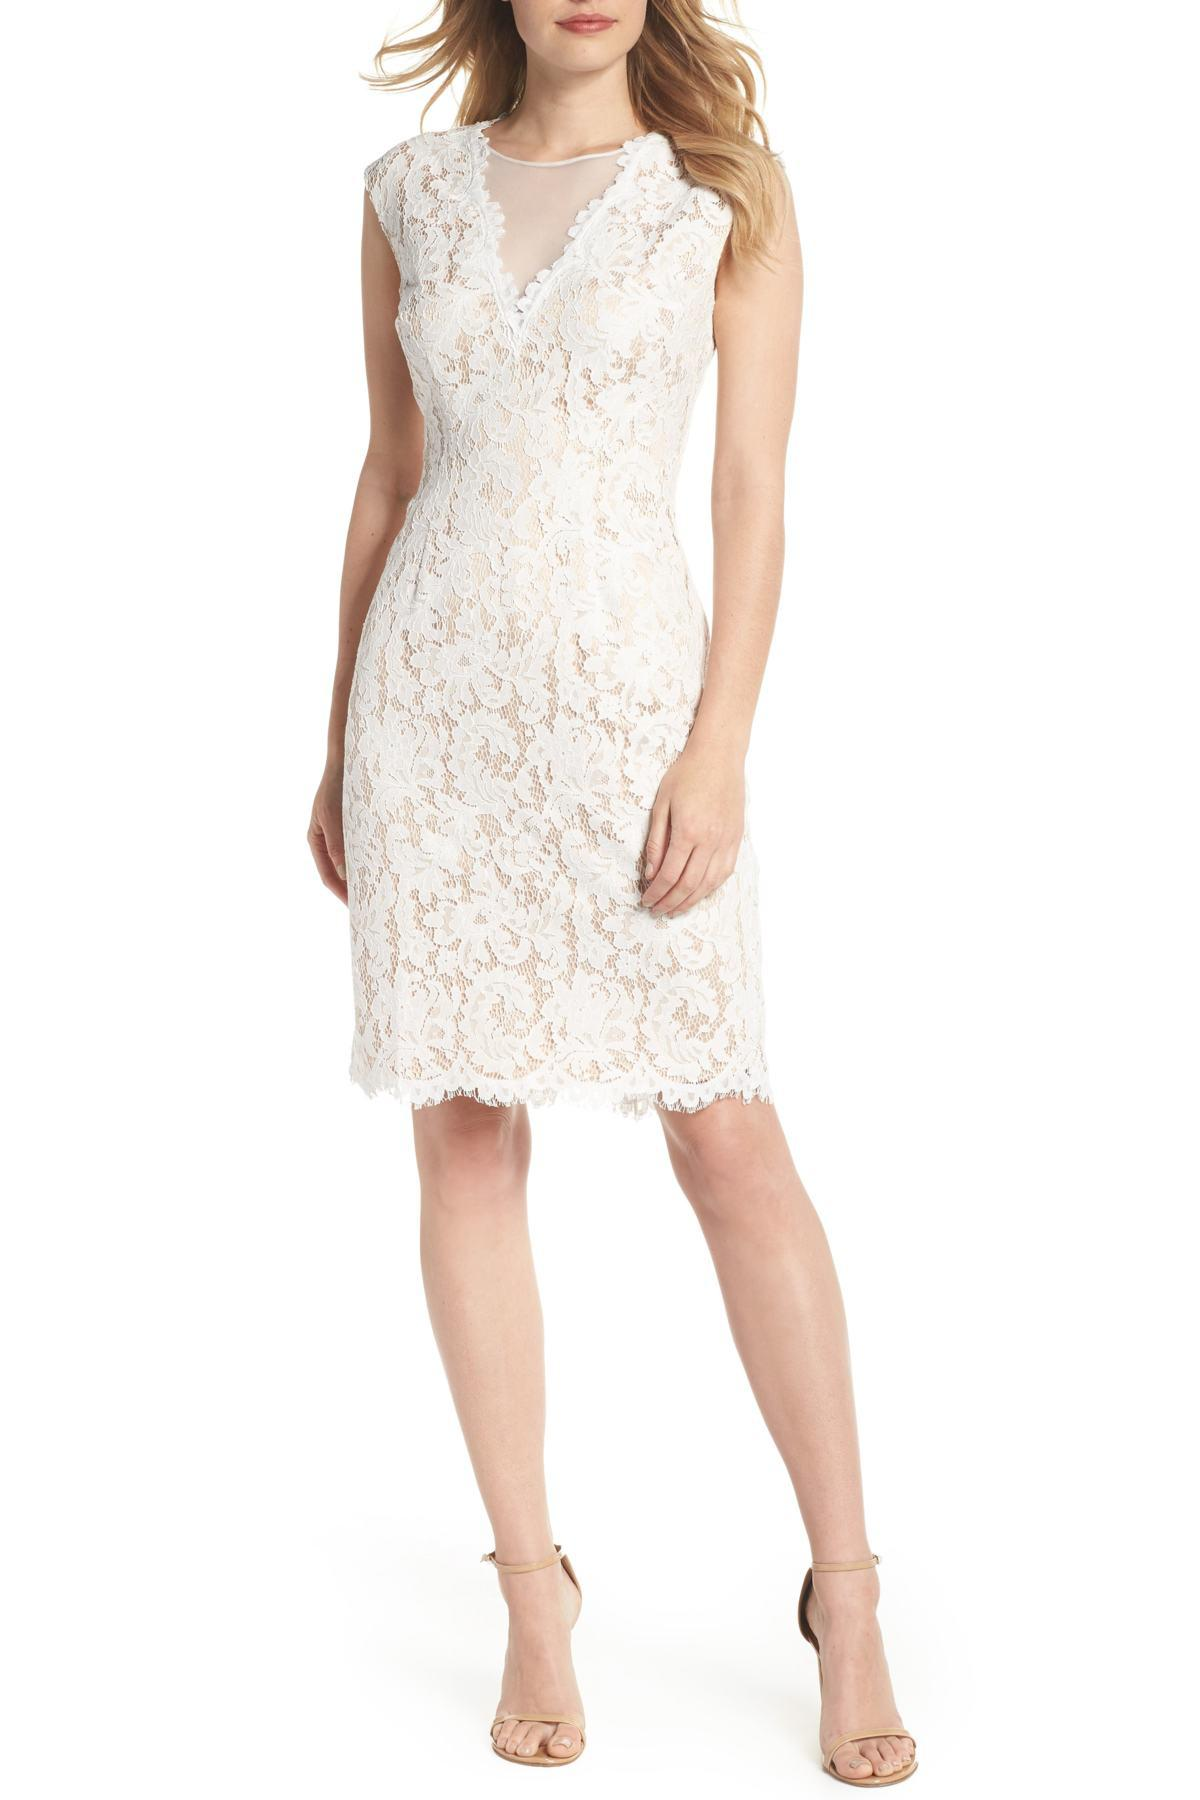 817d15aa1f9c65 Lyst - Vince Camuto Illusion Lace Sheath Dress in White - Save 36.0%